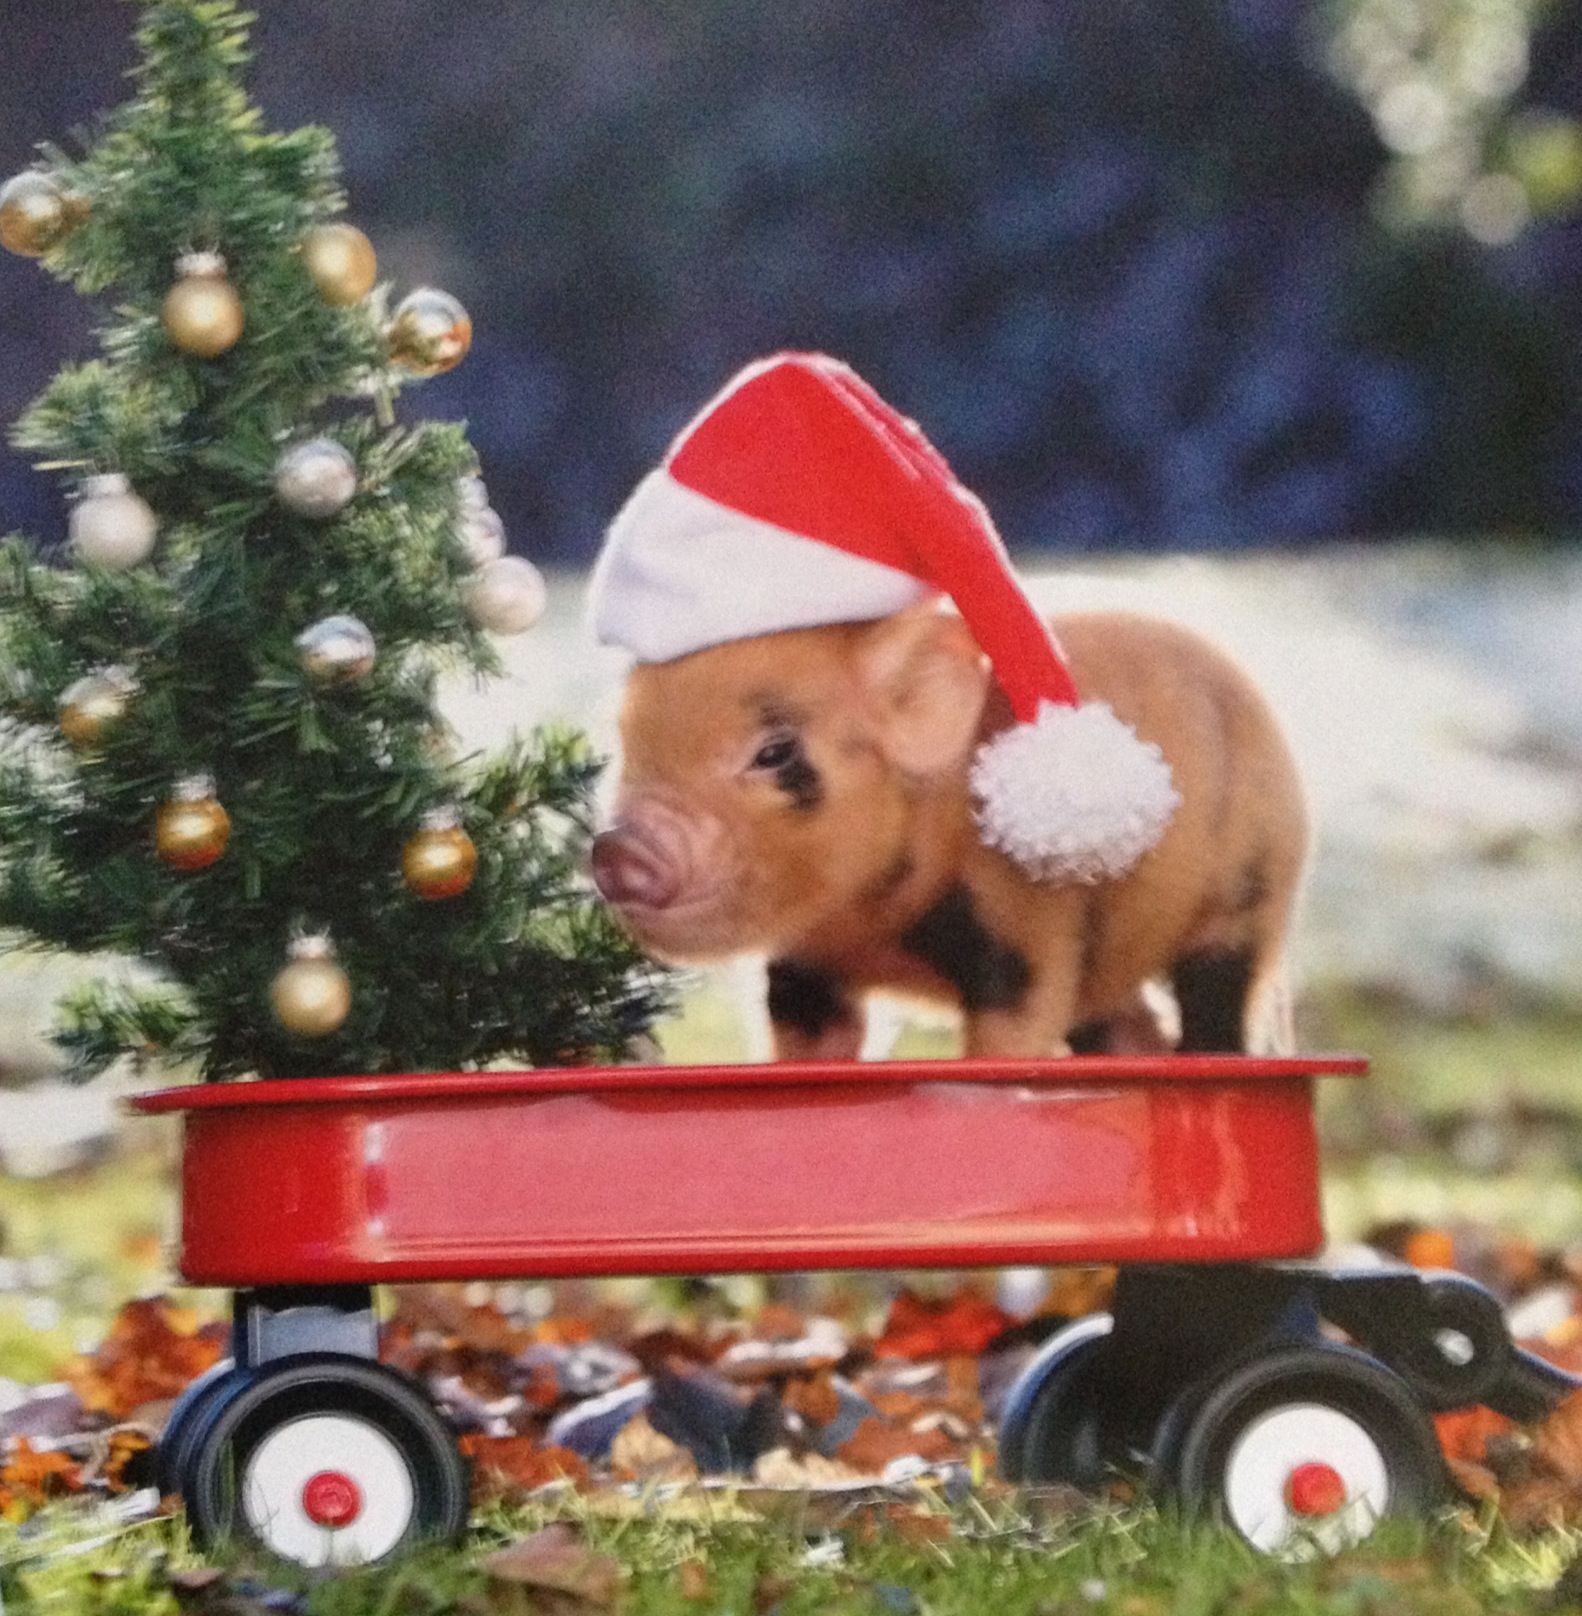 Merry Christmas! Cute pigs, Cute baby pigs, Baby piglets